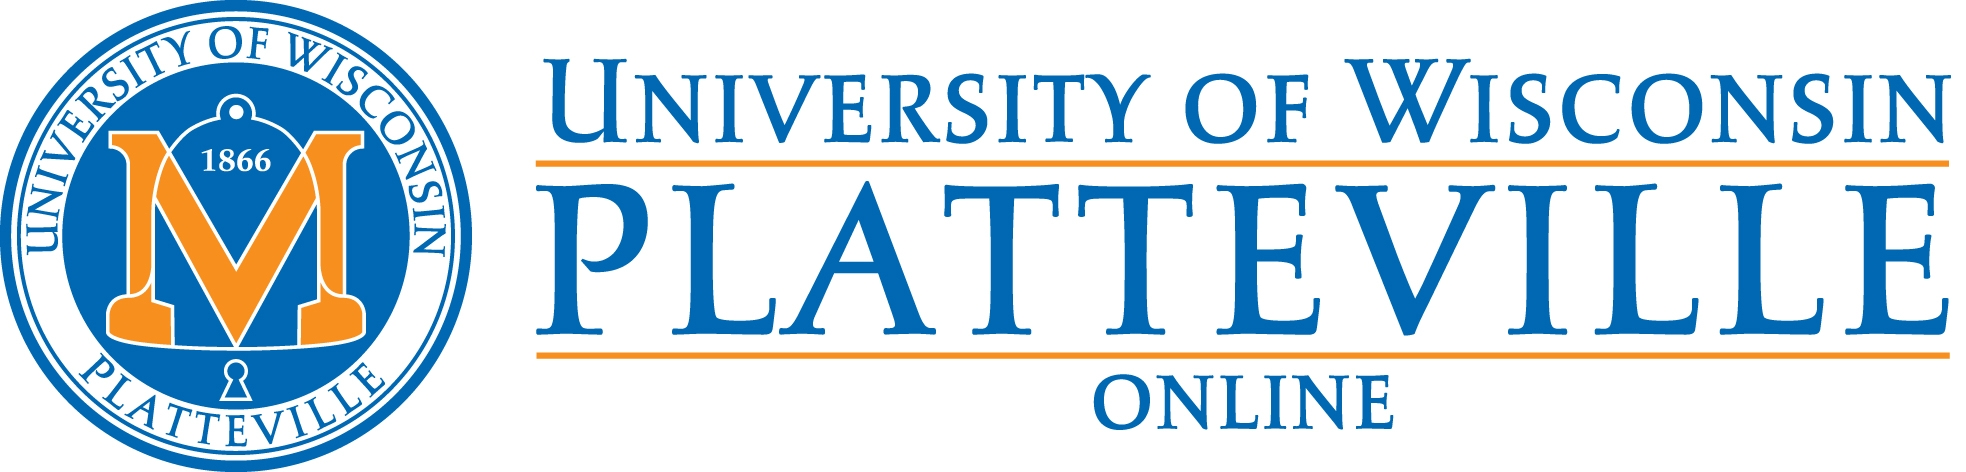 University of Wisconsin-Platteville Distance Learning Center